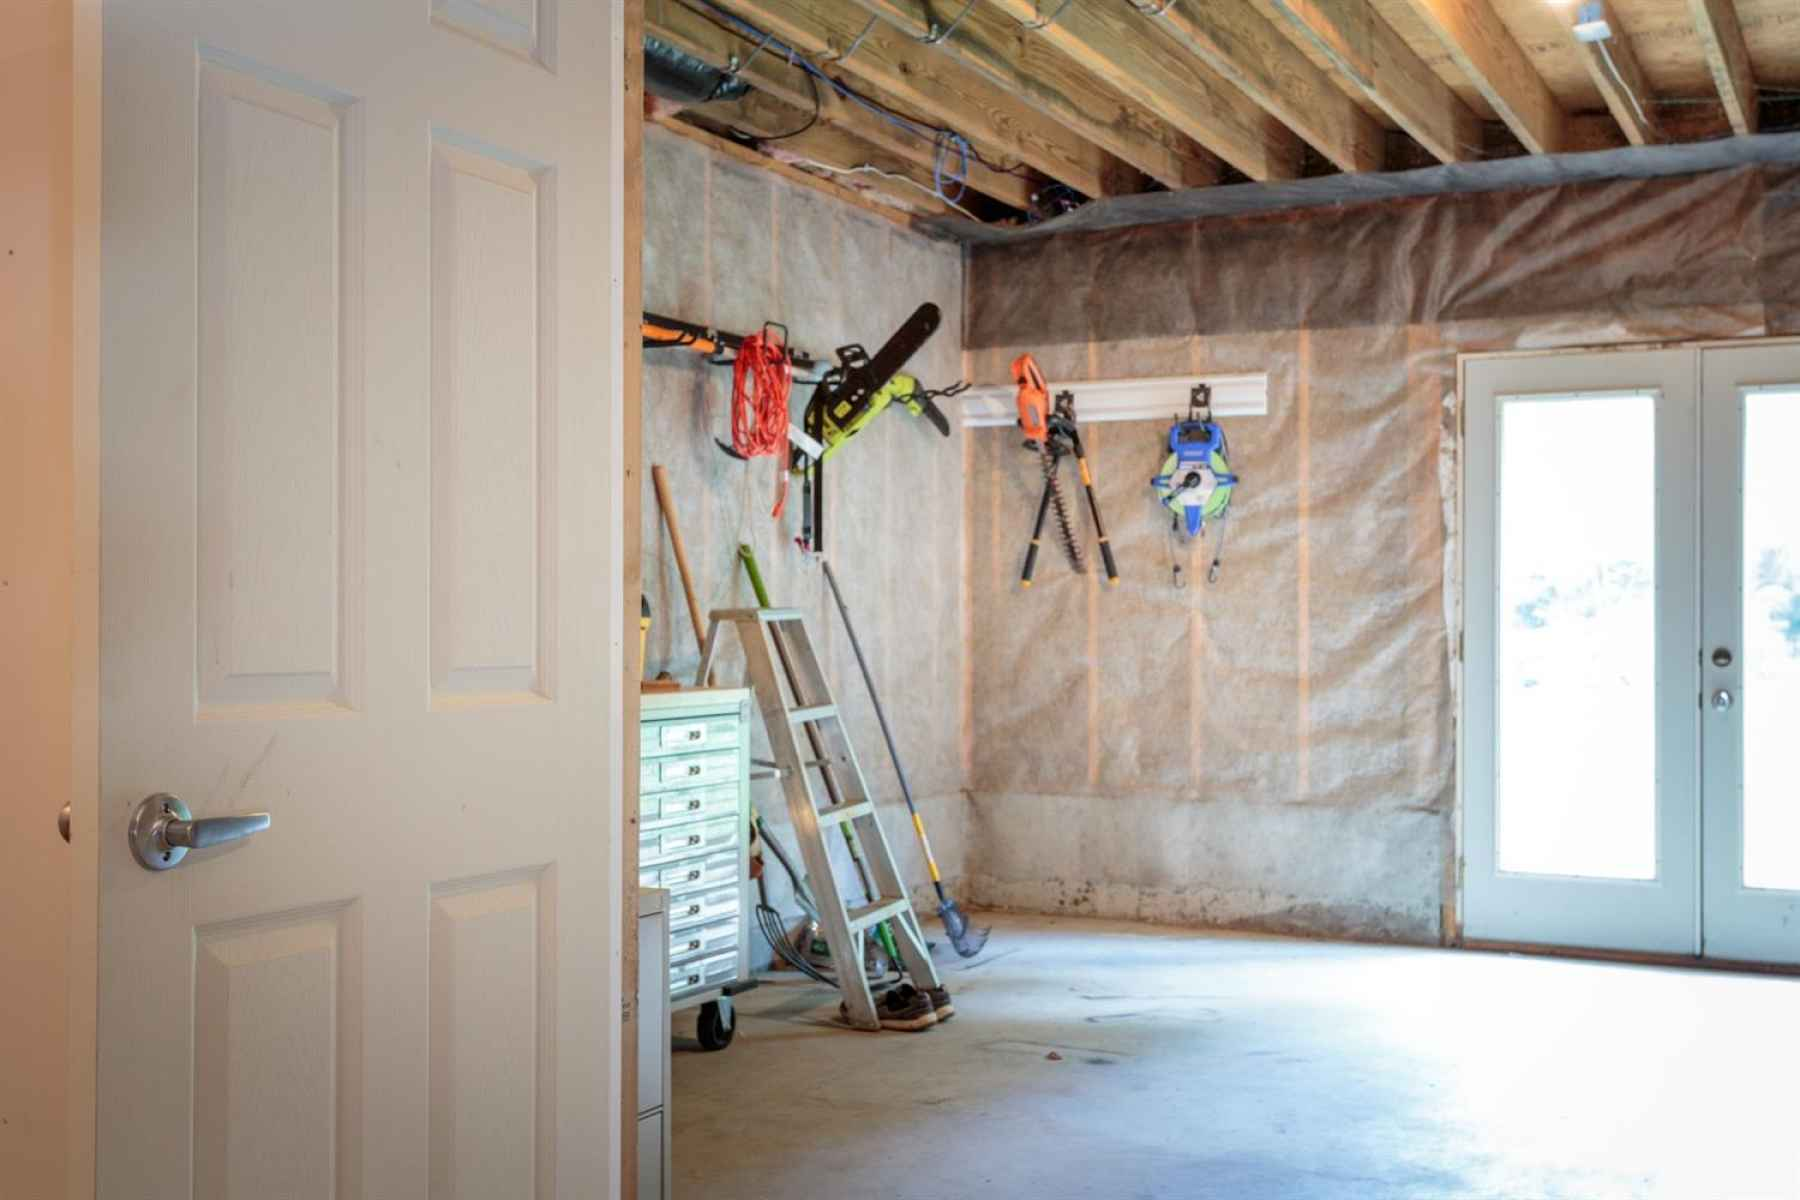 Walkout basement offers additional space to store lawn equipment and tools.